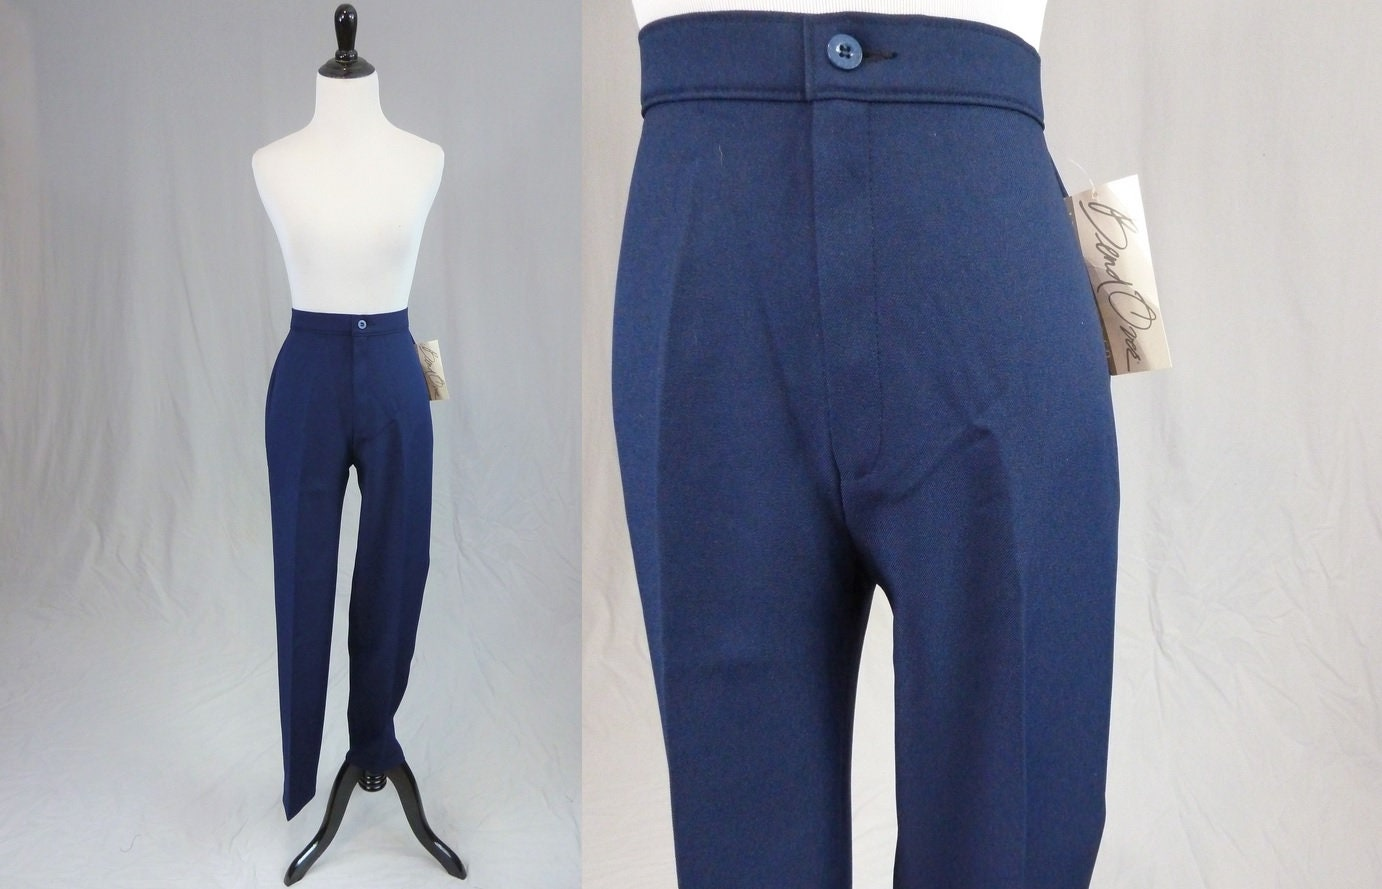 80s Dresses | Casual to Party Dresses 80S Levis Navy Blue Pants - Levi Strauss Bend Over High Waisted Deadstock Unworn with Tags Vintage 1980S 26 Waist $0.00 AT vintagedancer.com